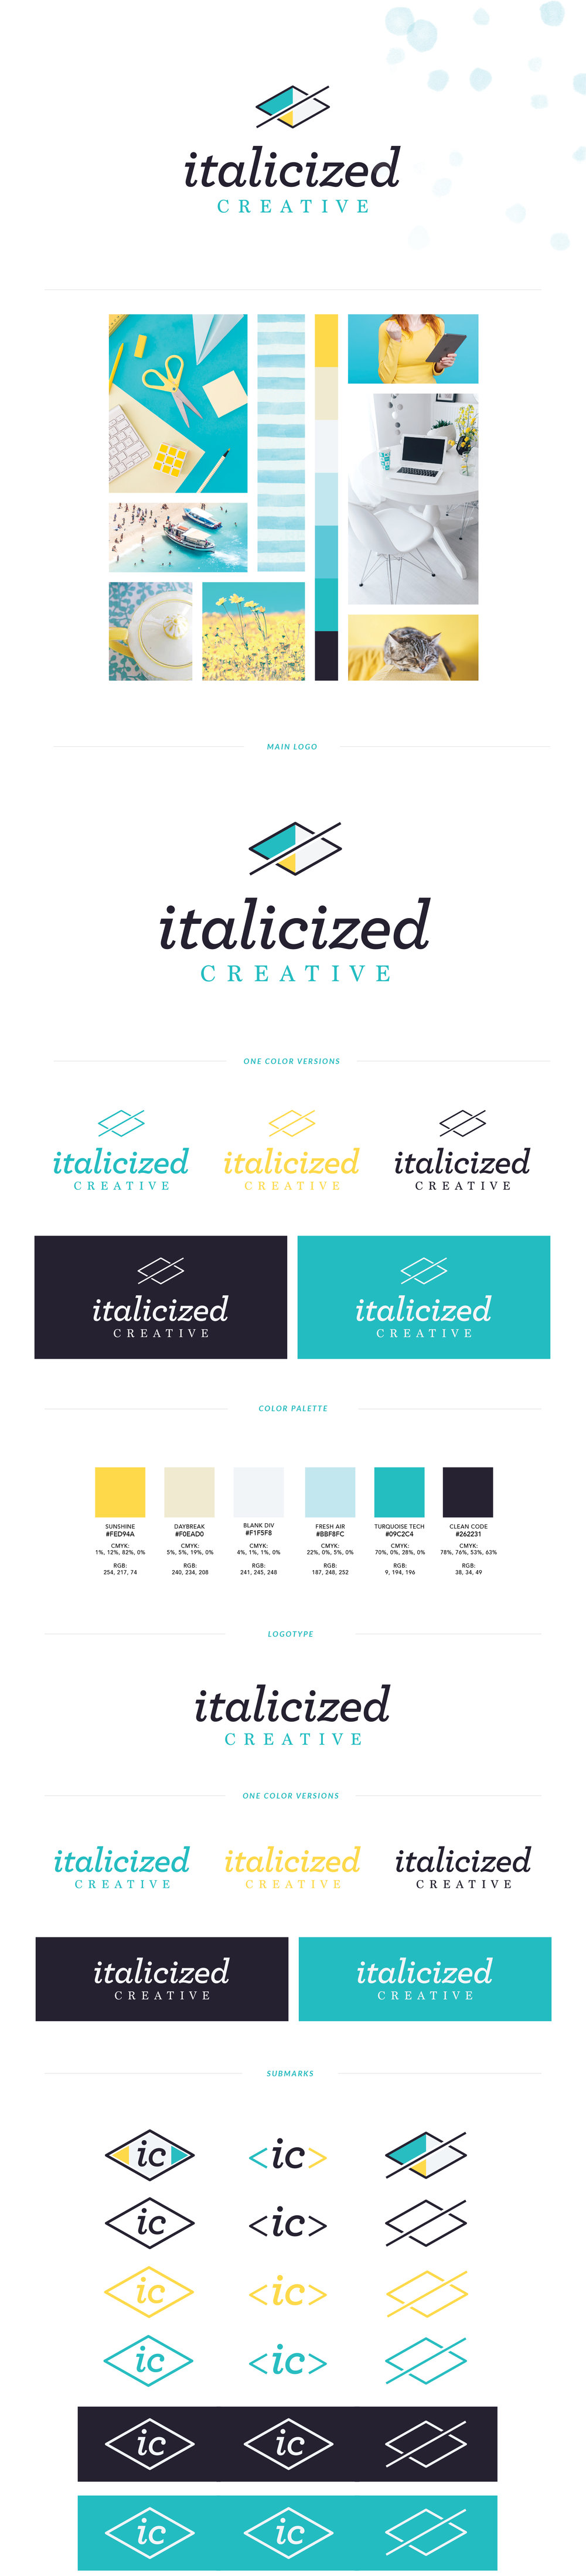 full custom brand design style guide